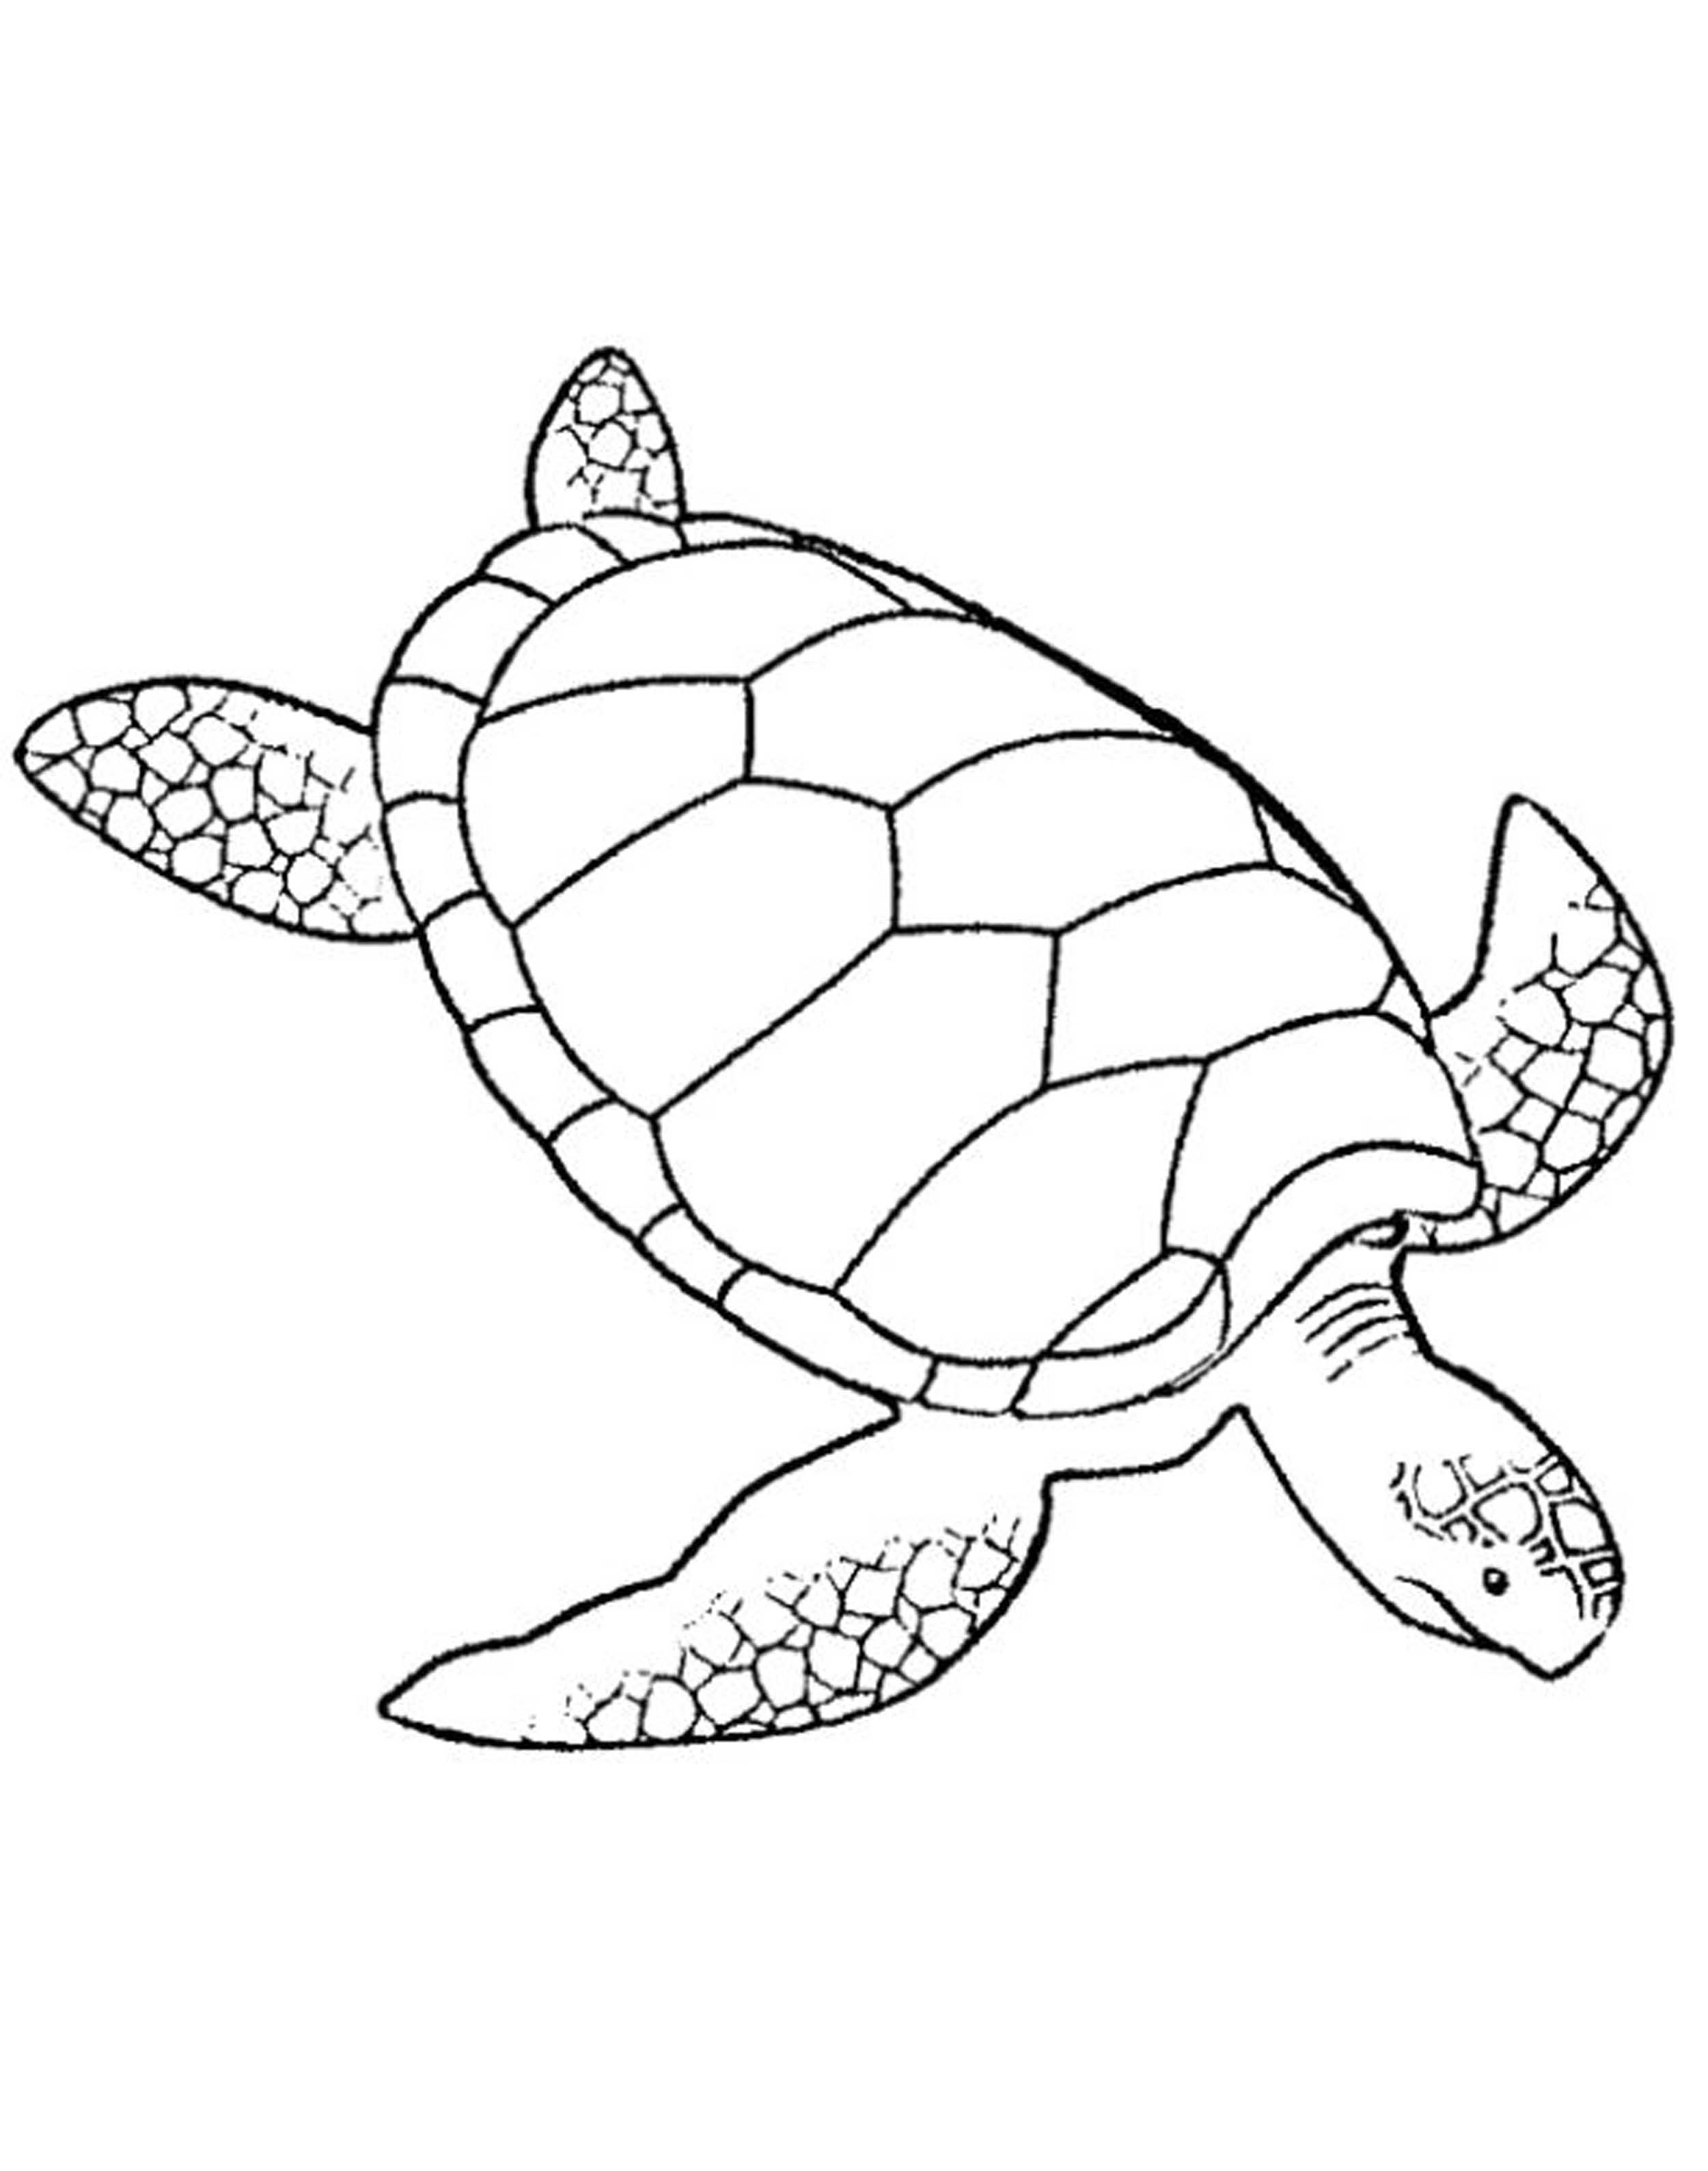 coloring pages for adults turtle adult coloring page world turtle printable by candyhippie for pages adults turtle coloring